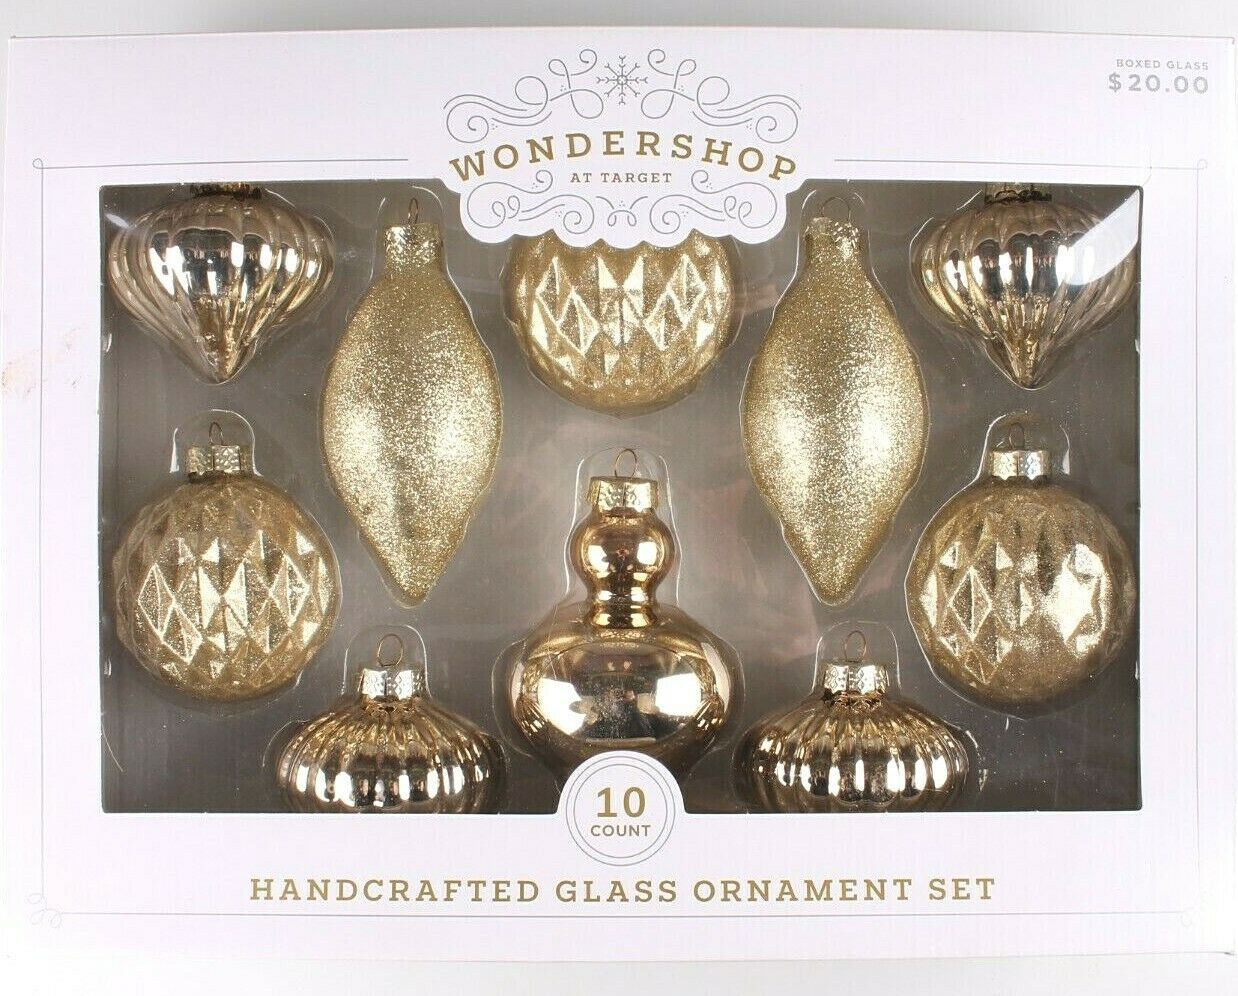 Wondershop 10 Piece Handcrafted Gold Glass Christmas Tree Ornaments Set NEW BOX